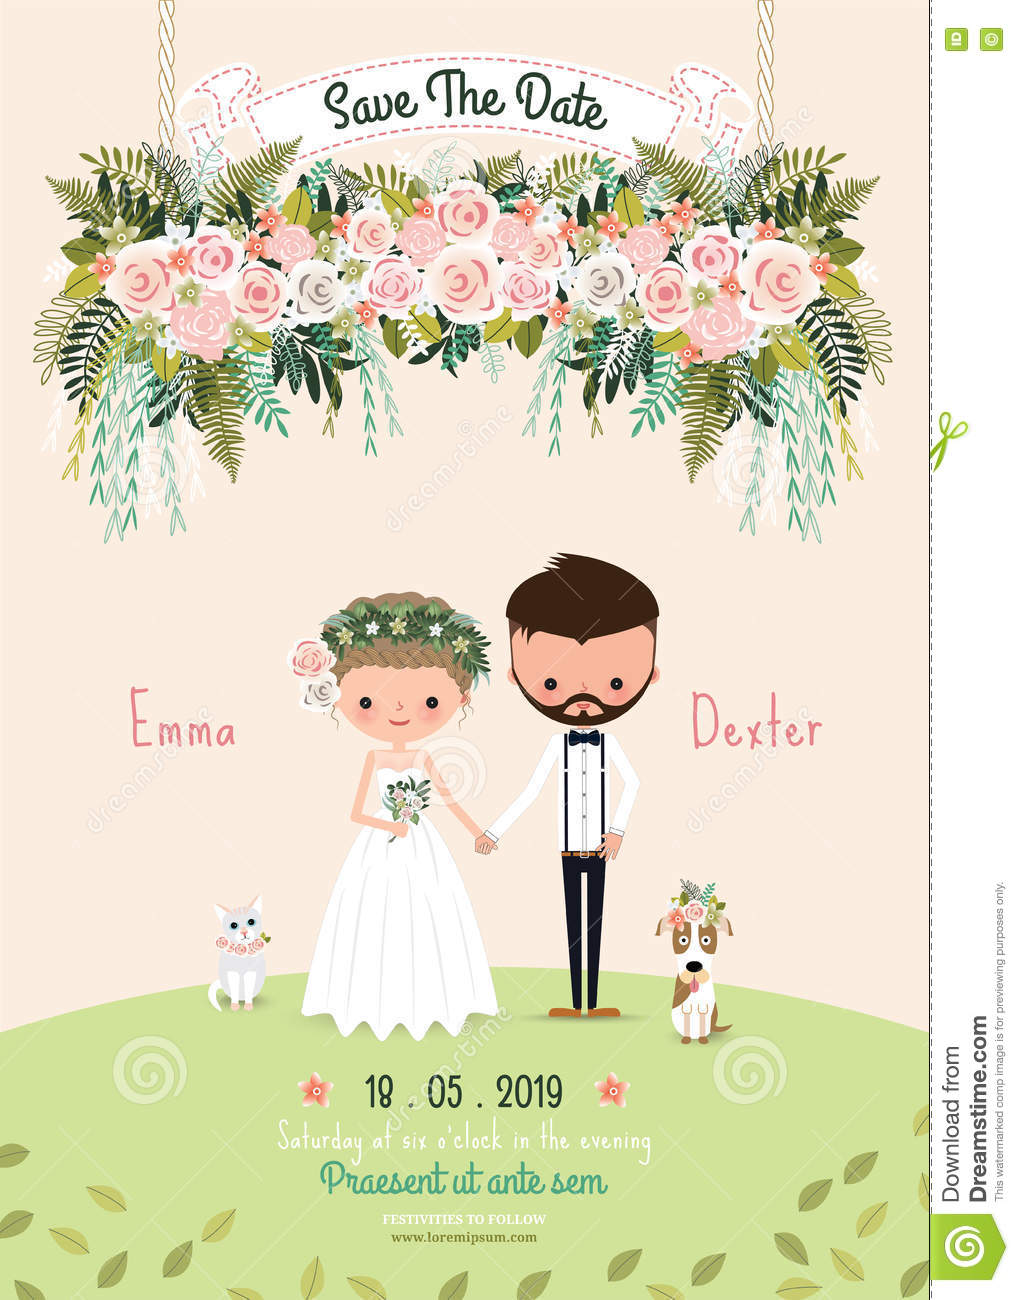 rustic wedding couple save the date invitation card floral blossom